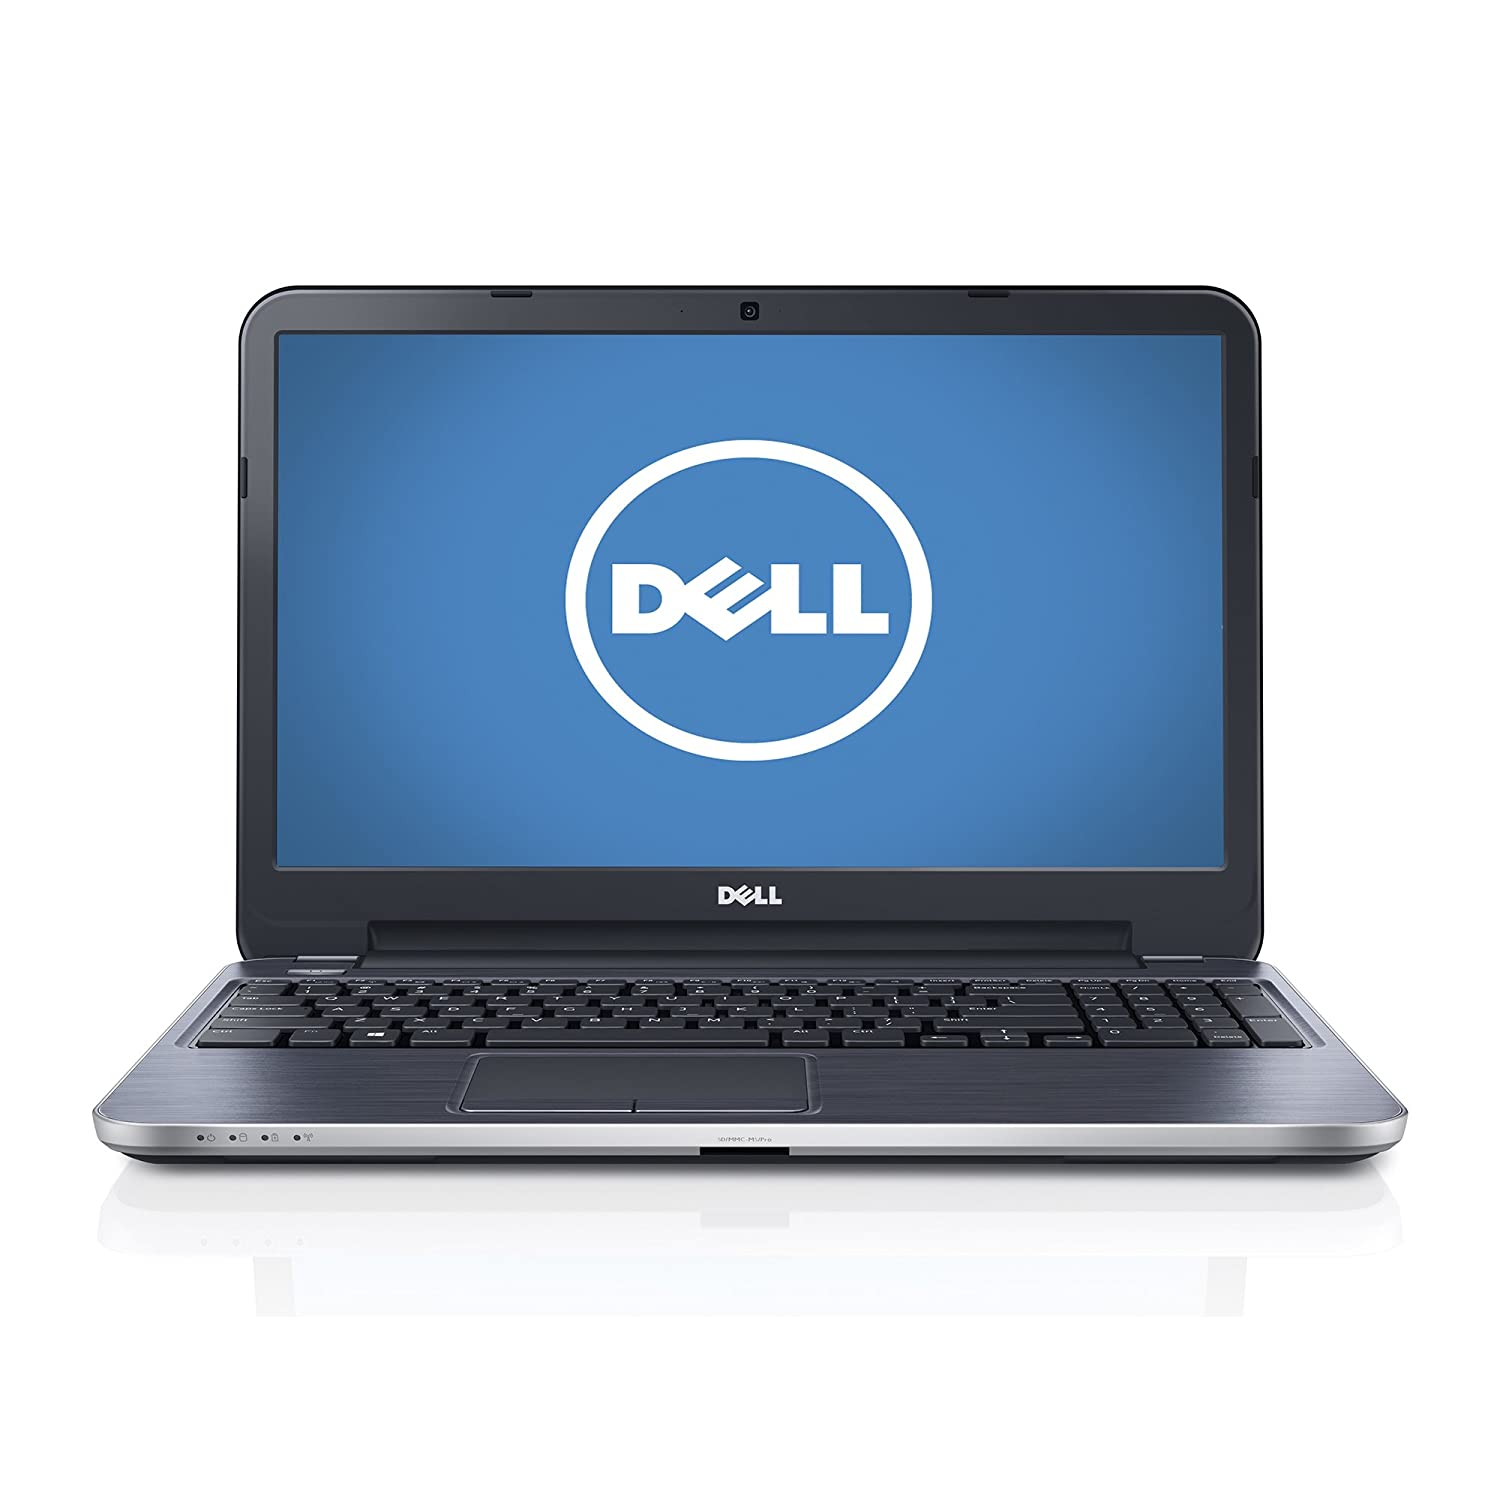 Dell Inspiron 15R i15RM-7538sLV 15.6-Inch Laptop